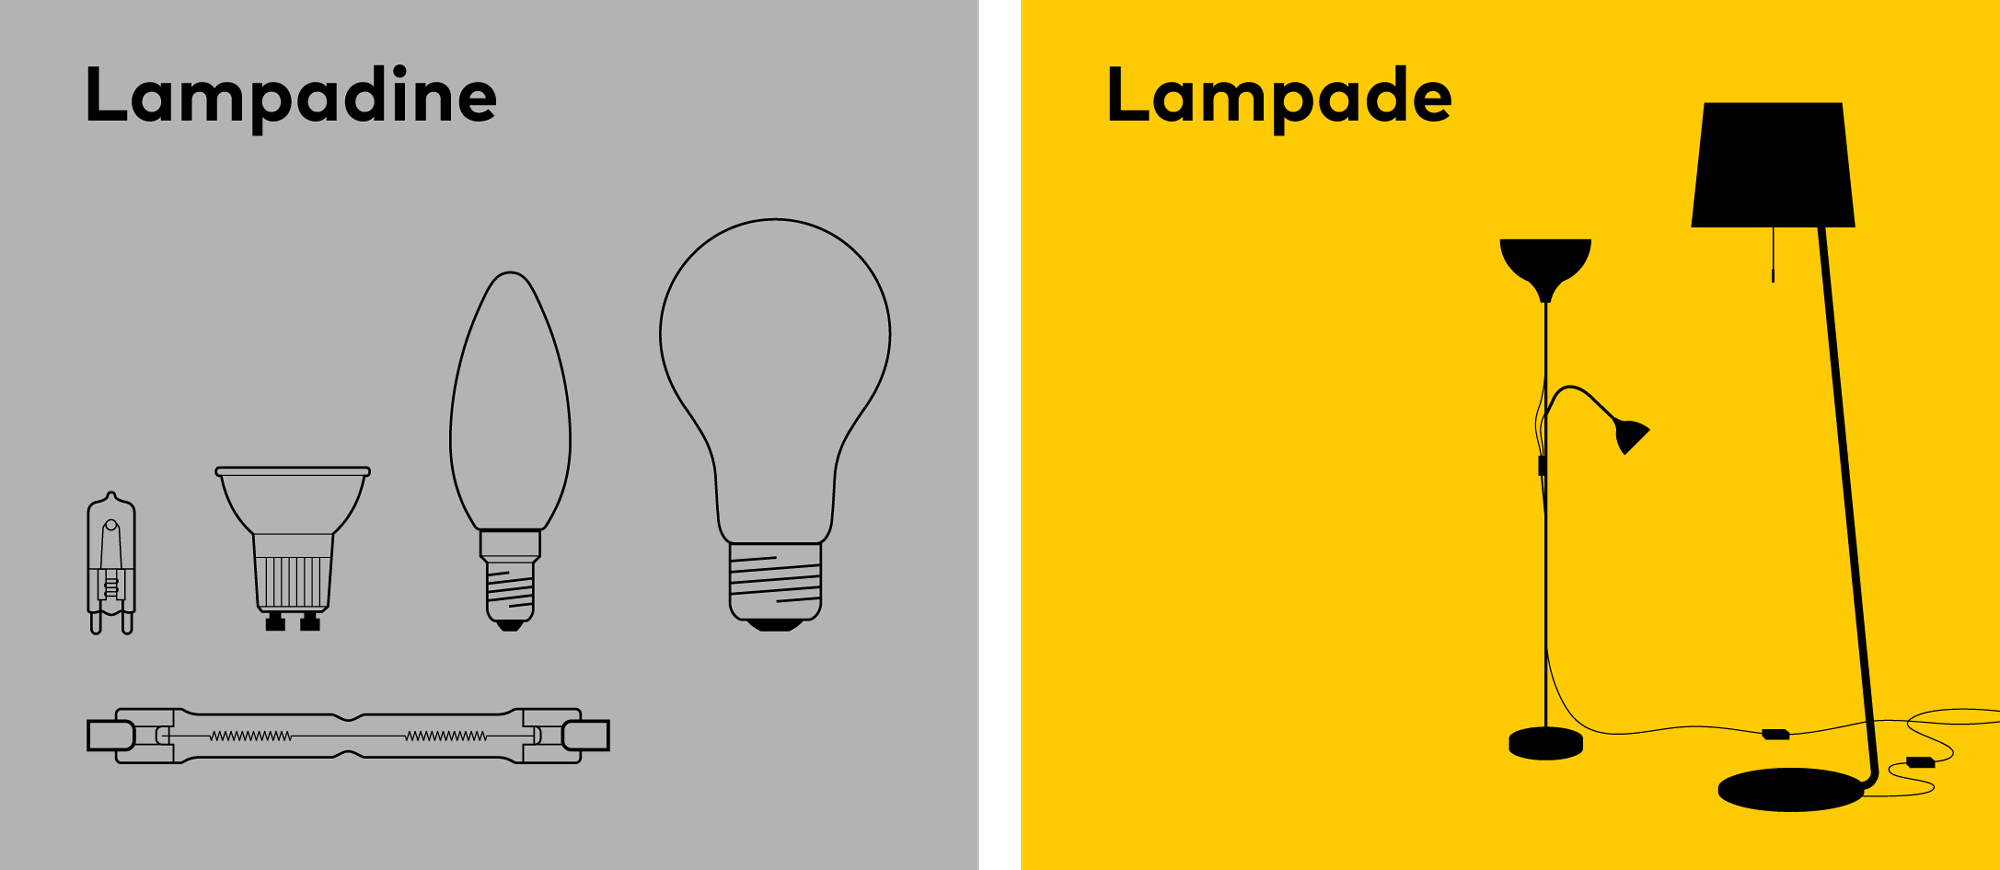 Differenza lampadine e lampade